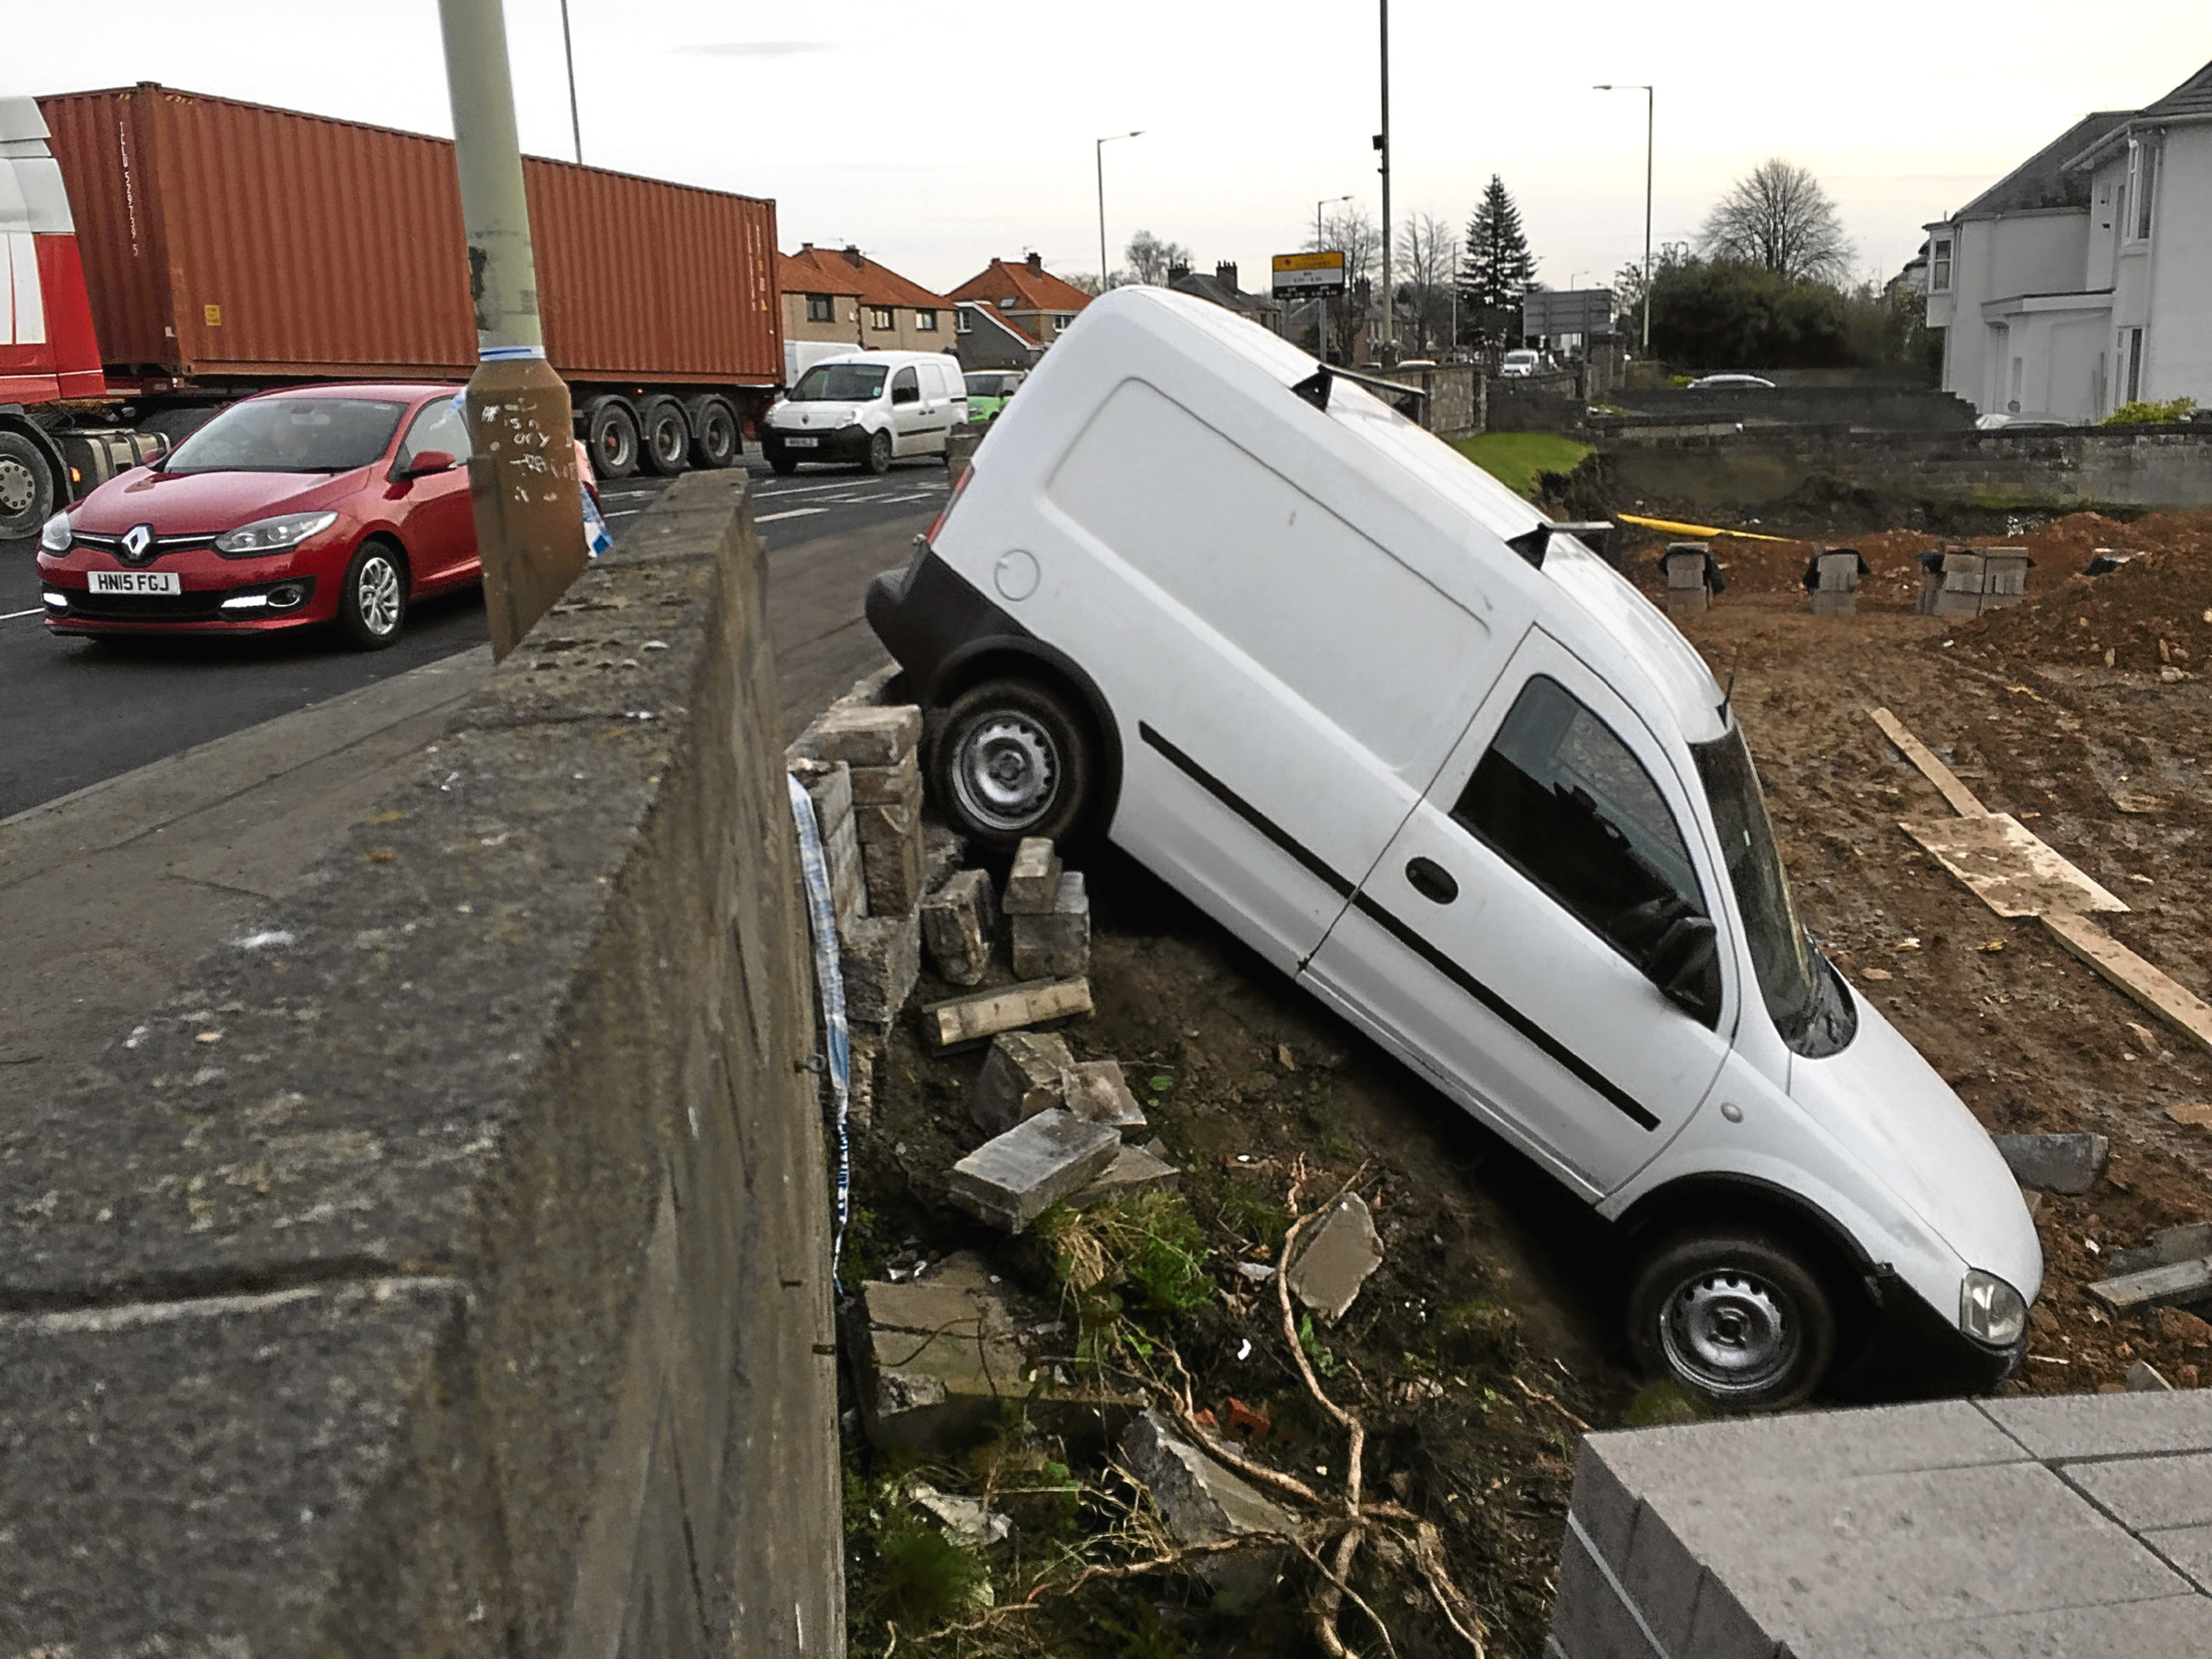 The white van pictured after having crashed through the wall near the Scott Fyffe Roundabout.